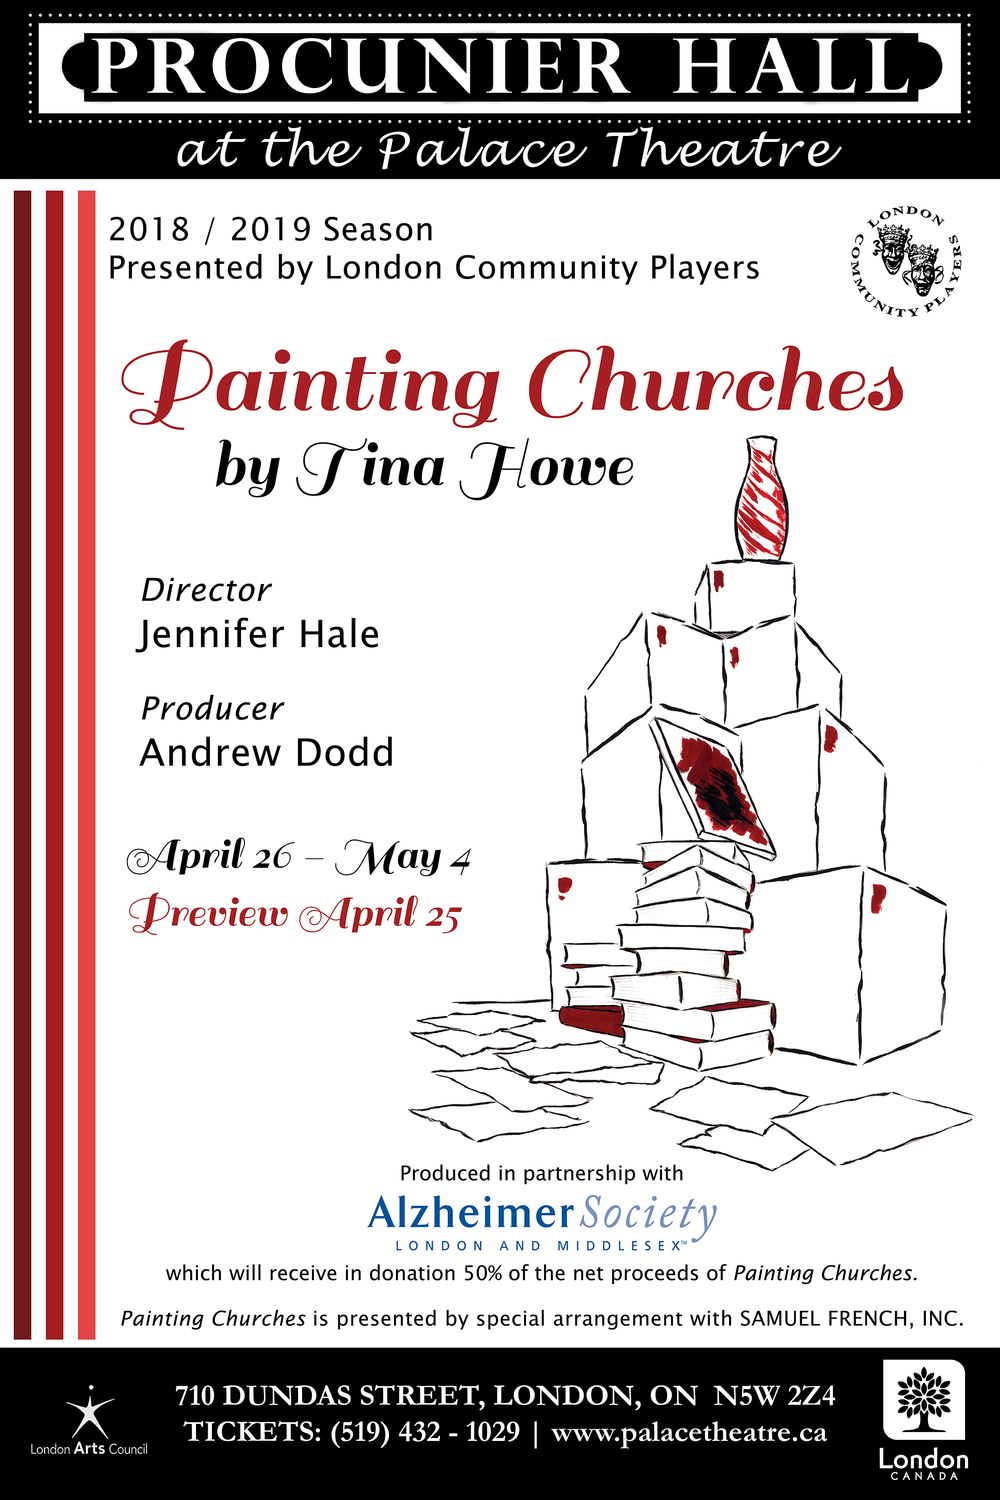 Painting Churches - By Tina HoweDirector Jennifer HalePresented by LCPProcunier Hall, April 25 - May 4, 2019Gardner and Fanny Church are preparing to move out of their Beacon Hill house to their summer cottage on Cape Cod. Gardner, once a famous poet, now is retired. He is living with progressing dementia as his wife Fanny valiantly tries to keep them both afloat. They have asked their daughter, Mags, to come home and help them move. Mags agrees, for she hopes as well to finally paint their portrait. She is now on the verge of artistic celebrity herself and hopes, by painting her parents, to come to terms with them and they with her.